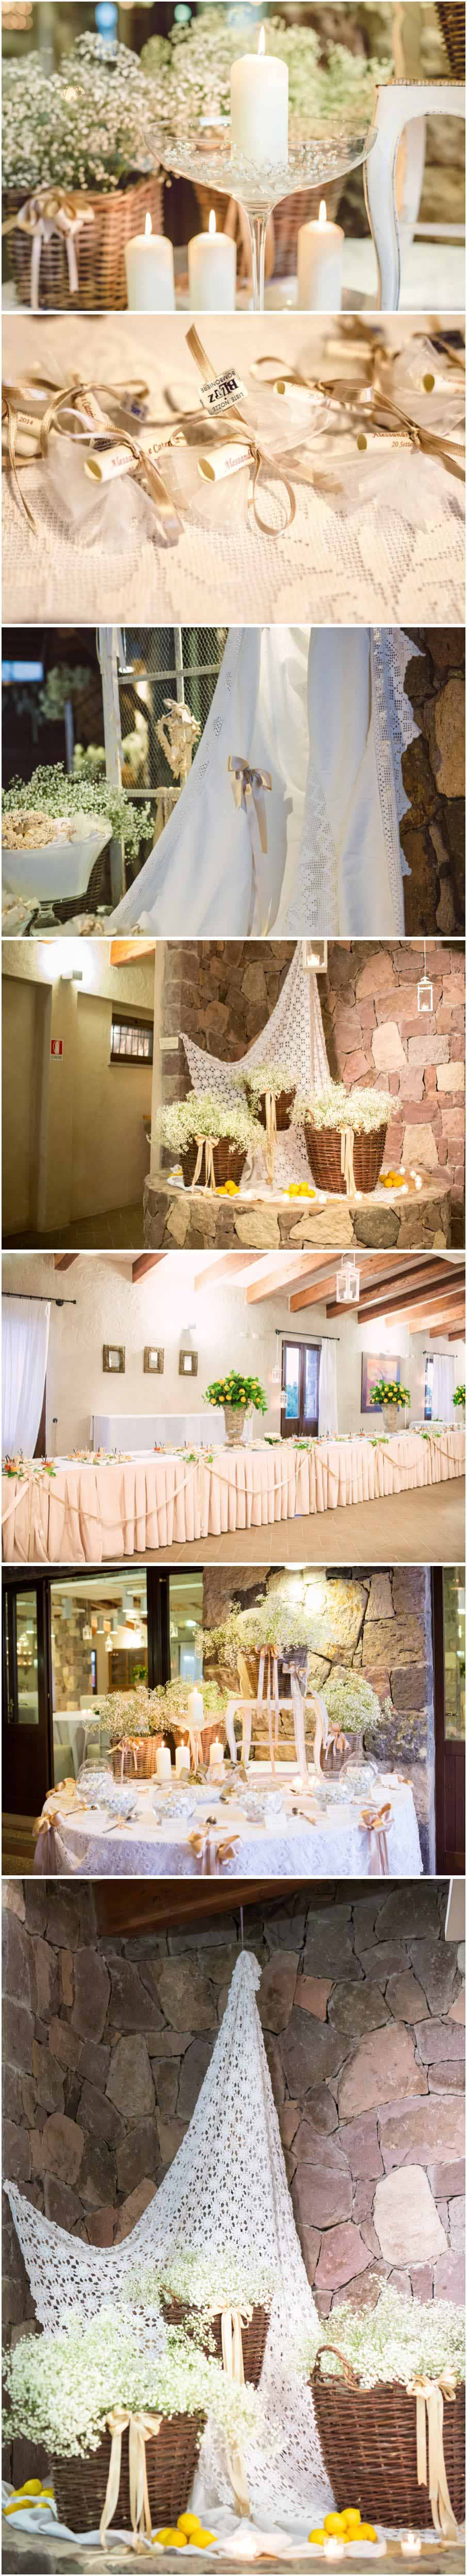 wedding photographer alghero